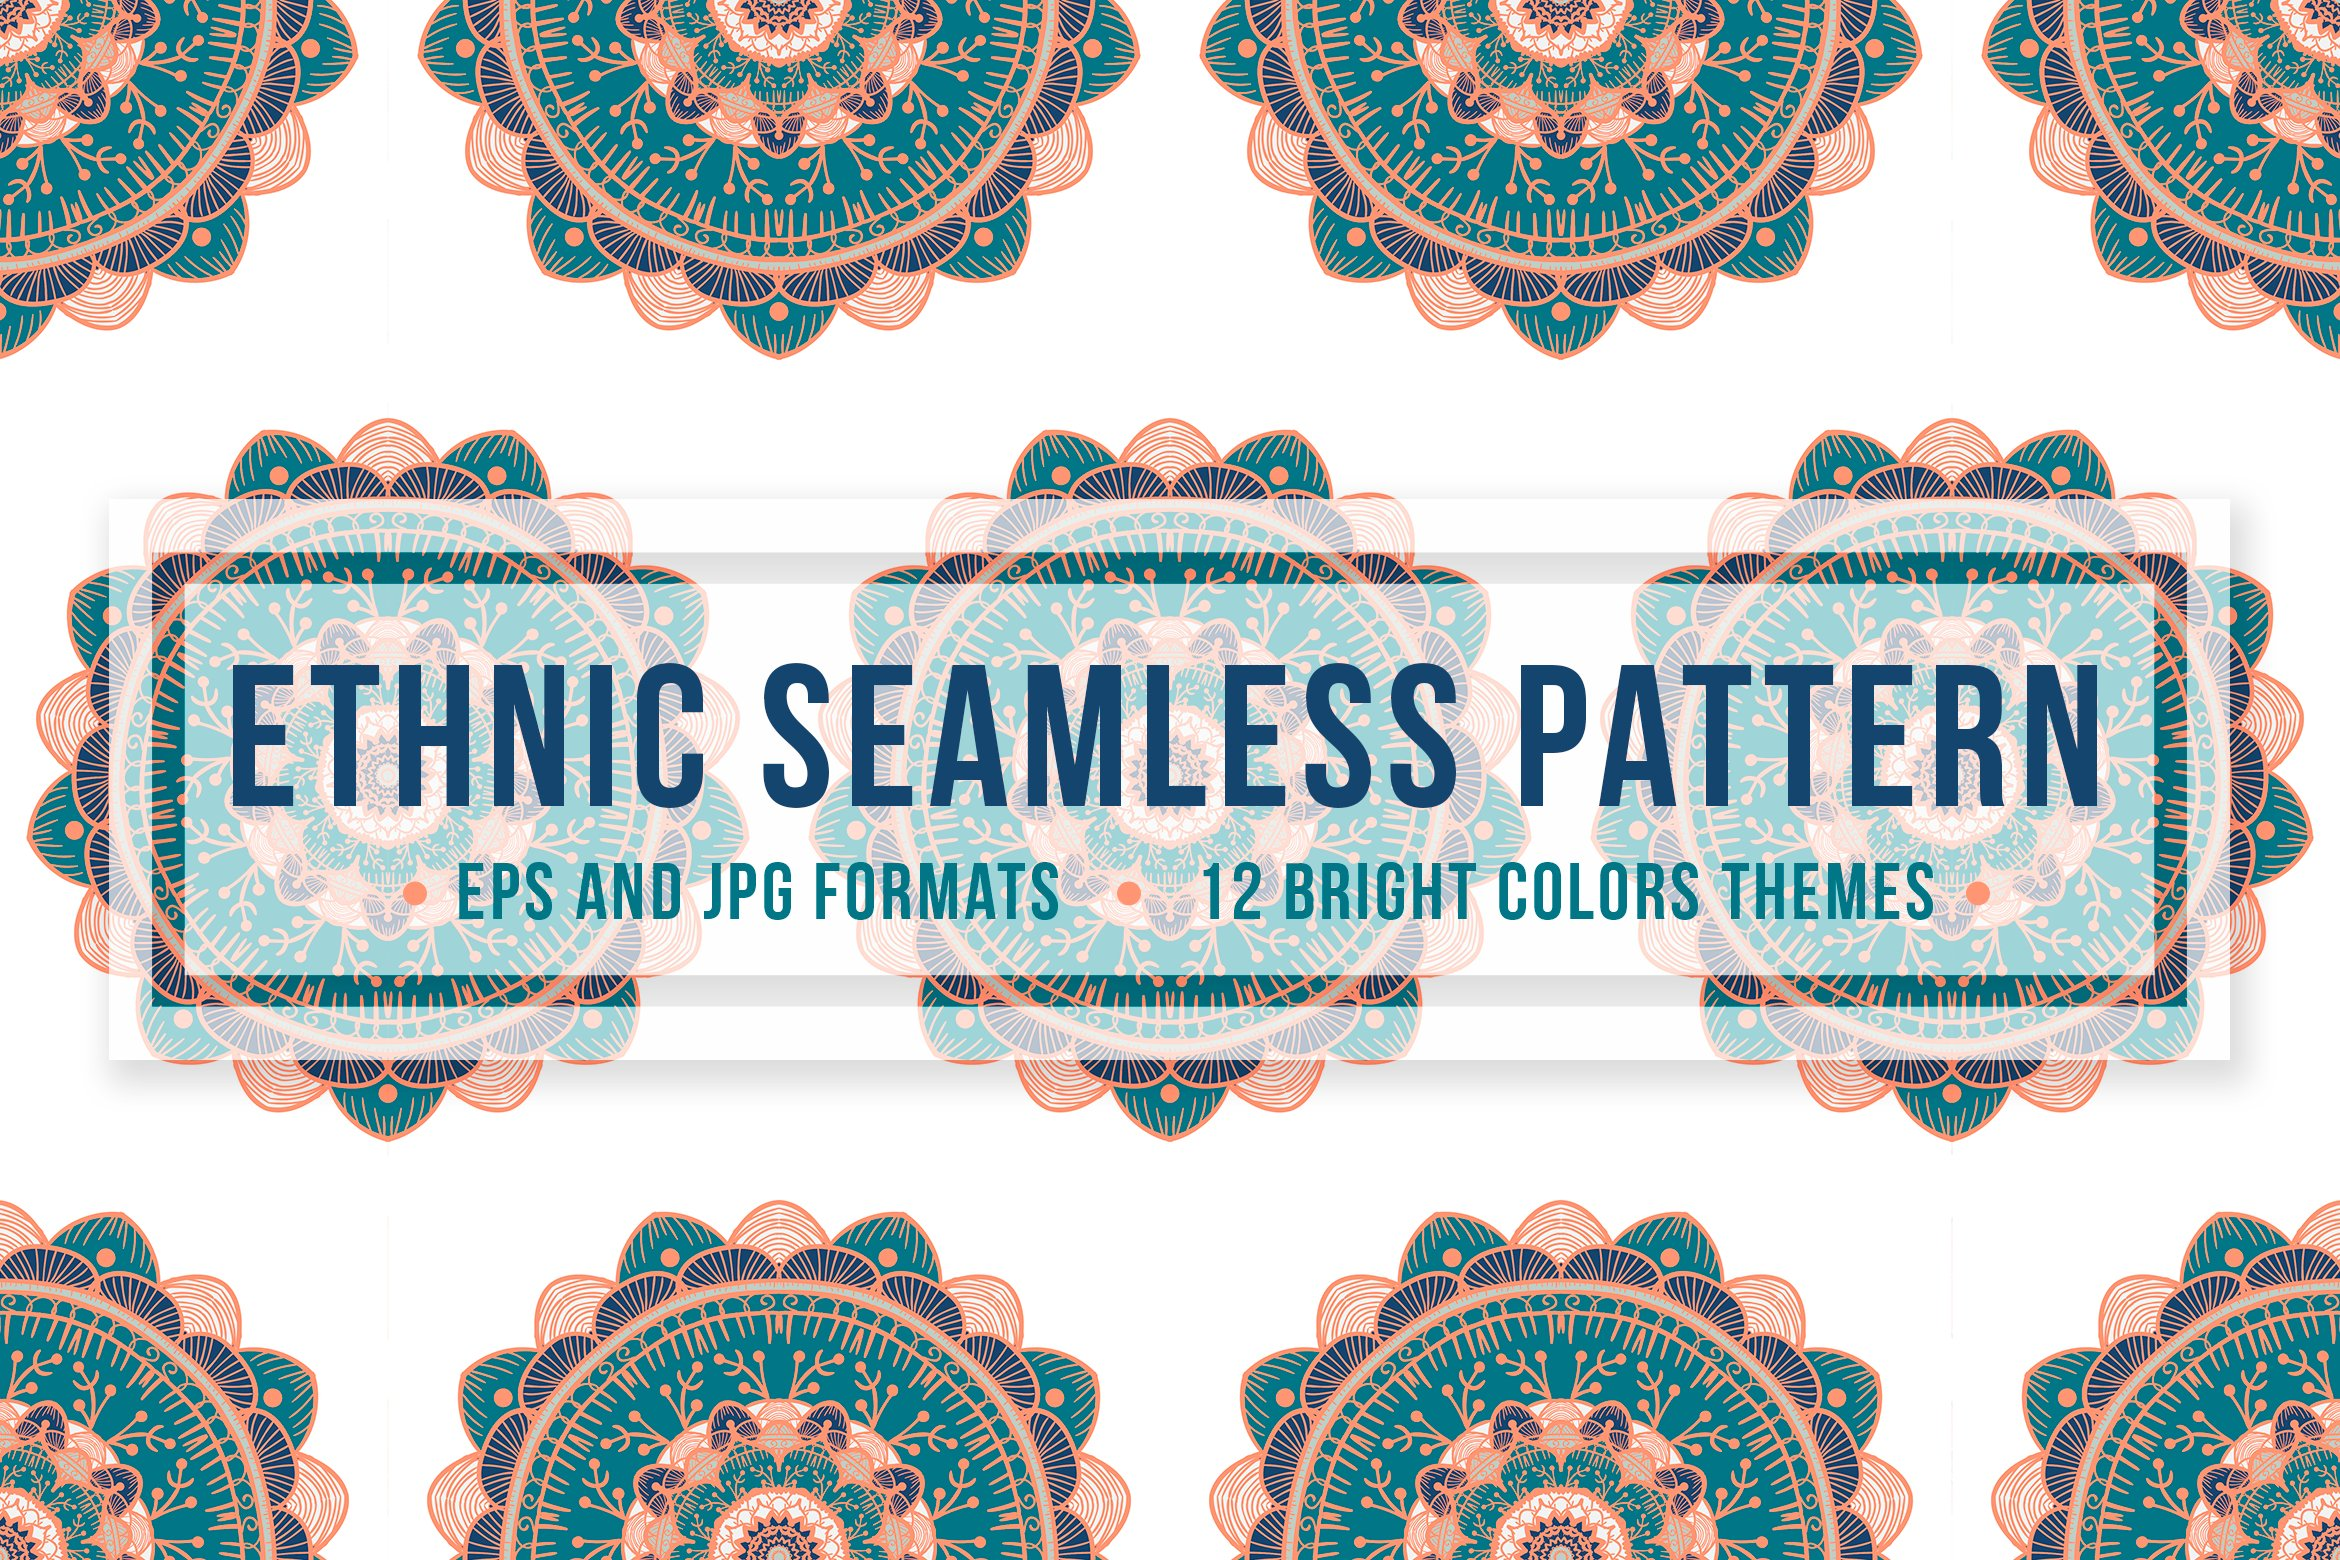 Download Free Ethnic Seamless Pattern Graphic By Barsrsind Creative Fabrica for Cricut Explore, Silhouette and other cutting machines.